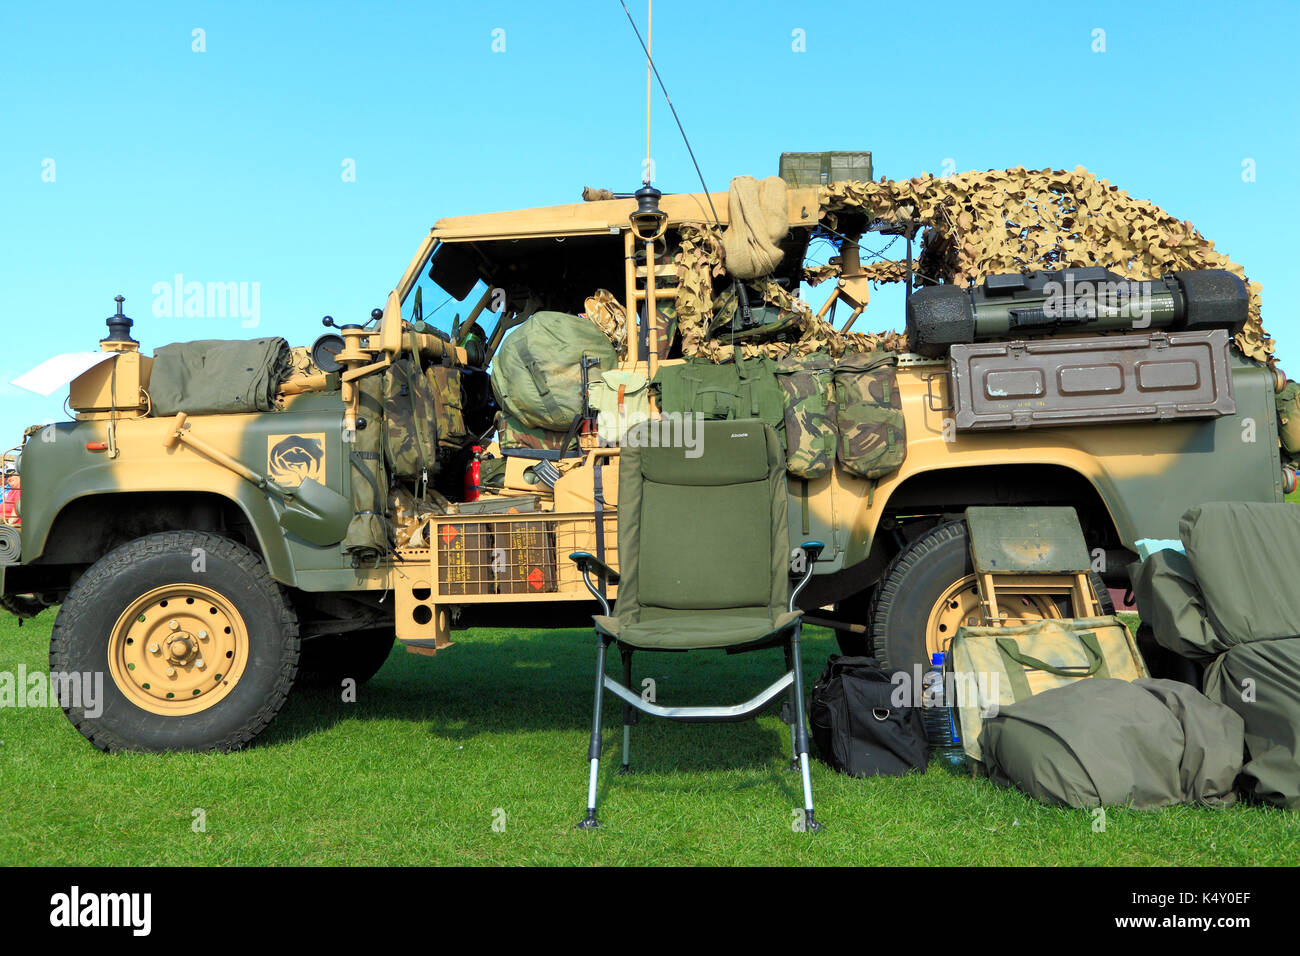 British Army, vintage vehicle, troop carrier, military, vehicles,England, UK - Stock Image